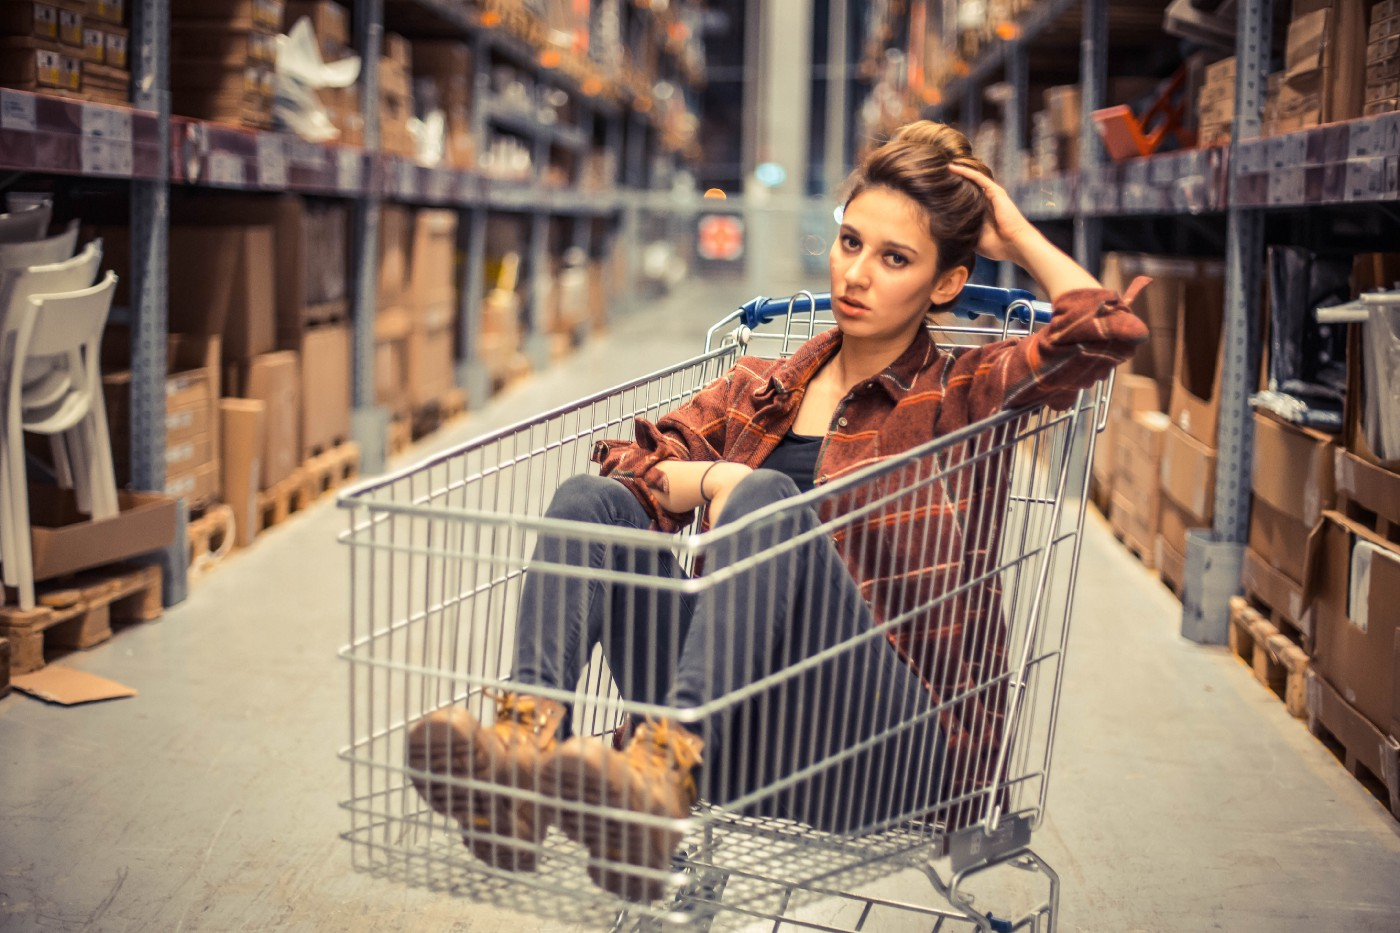 Woman sitting in a shopping cart